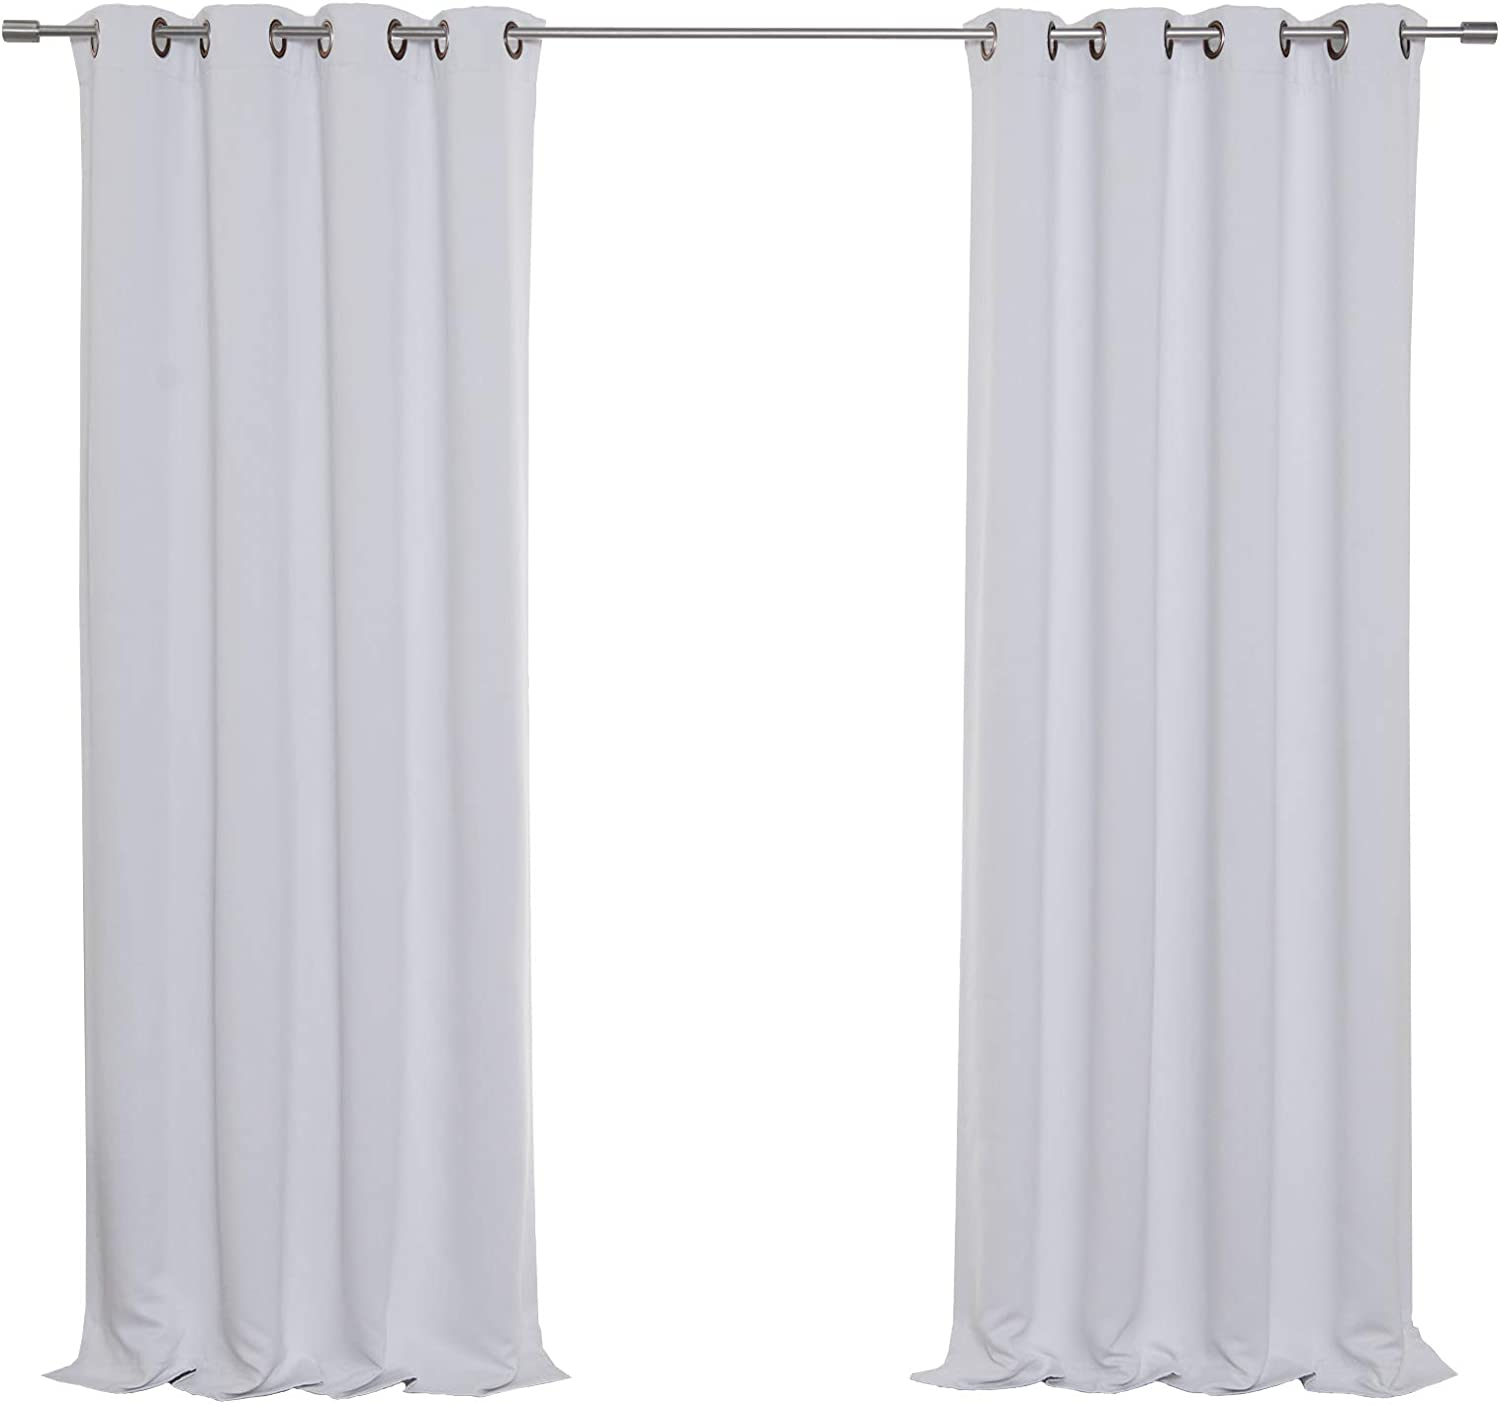 "Best Home Fashion Thermal Insulated Blackout Curtains - Antique Bronze Grommet Top - Vapor - 52"" W x 84"" L - (Set of 2 Panels)"